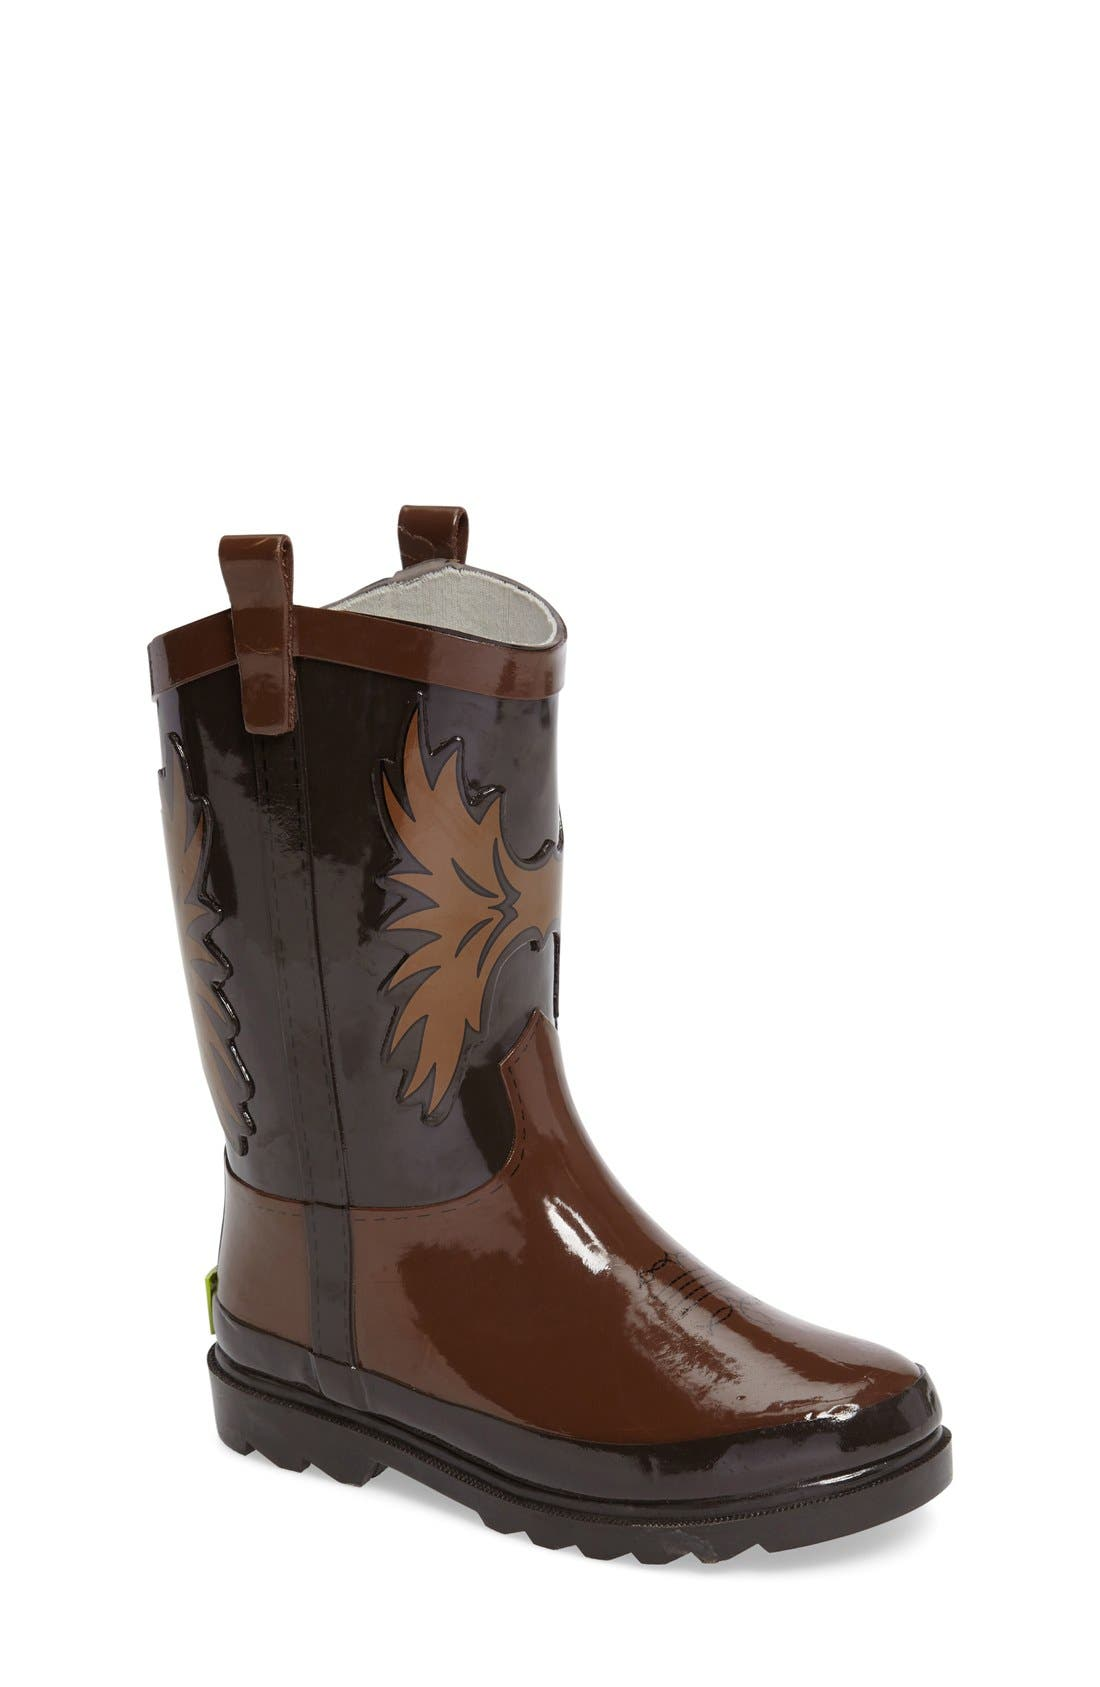 WESTERN CHIEF Cowboy Waterproof Rain Boot